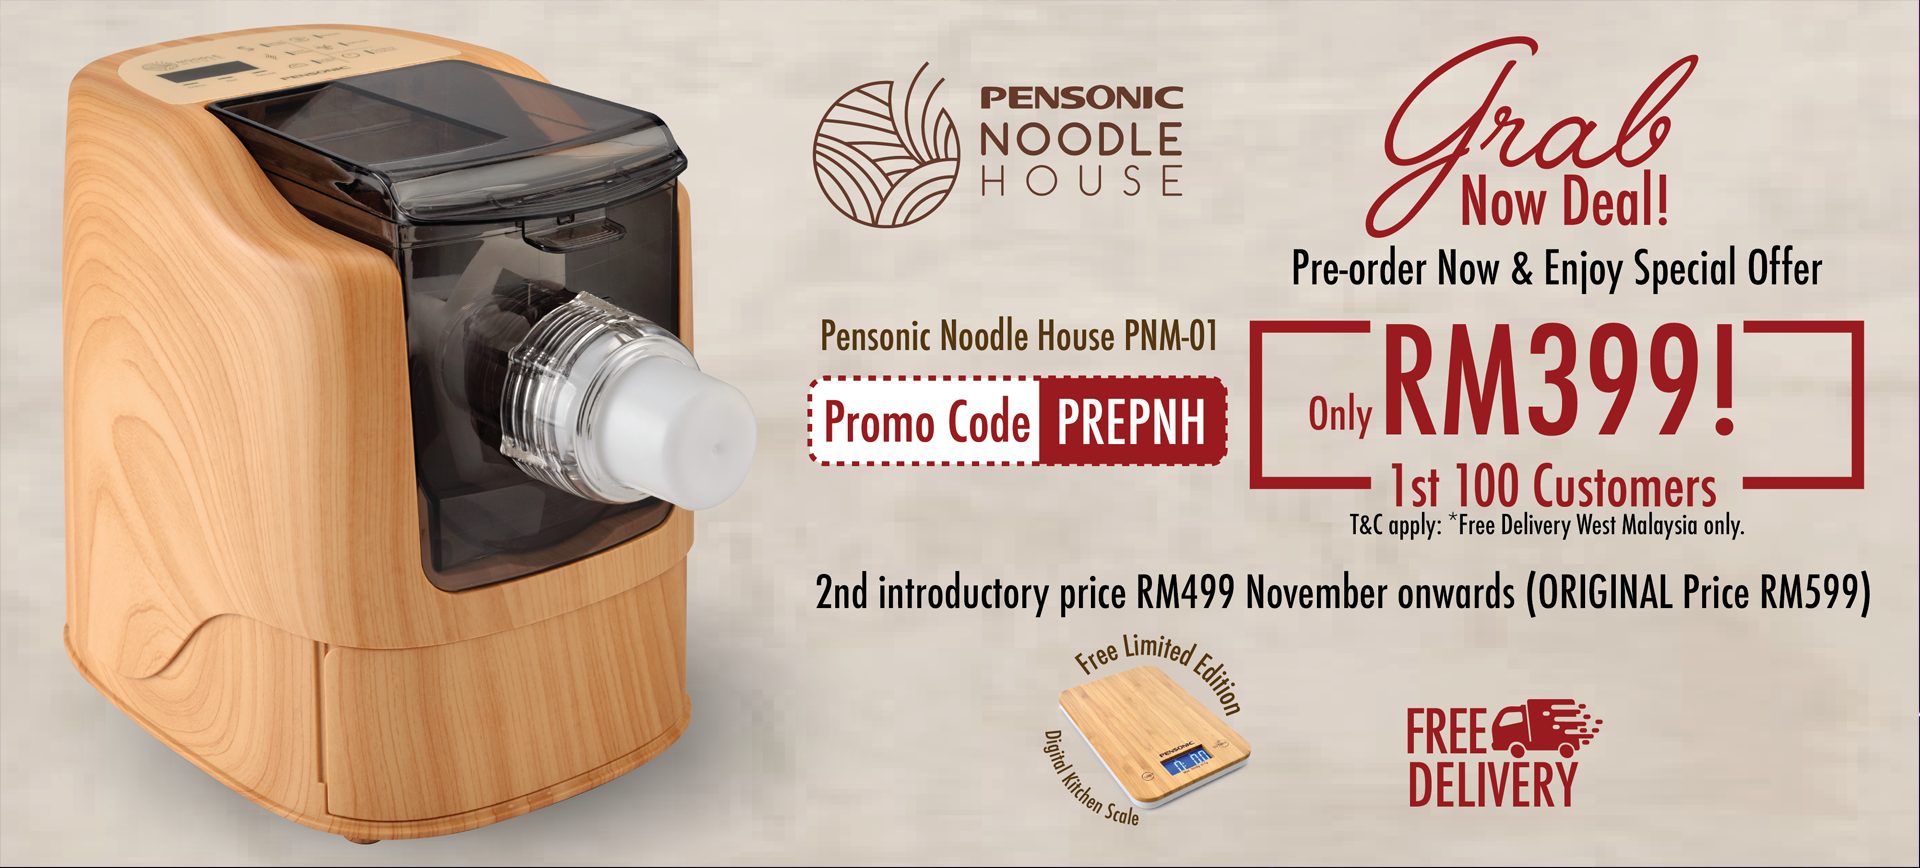 Pensonic Noodle house Preoder